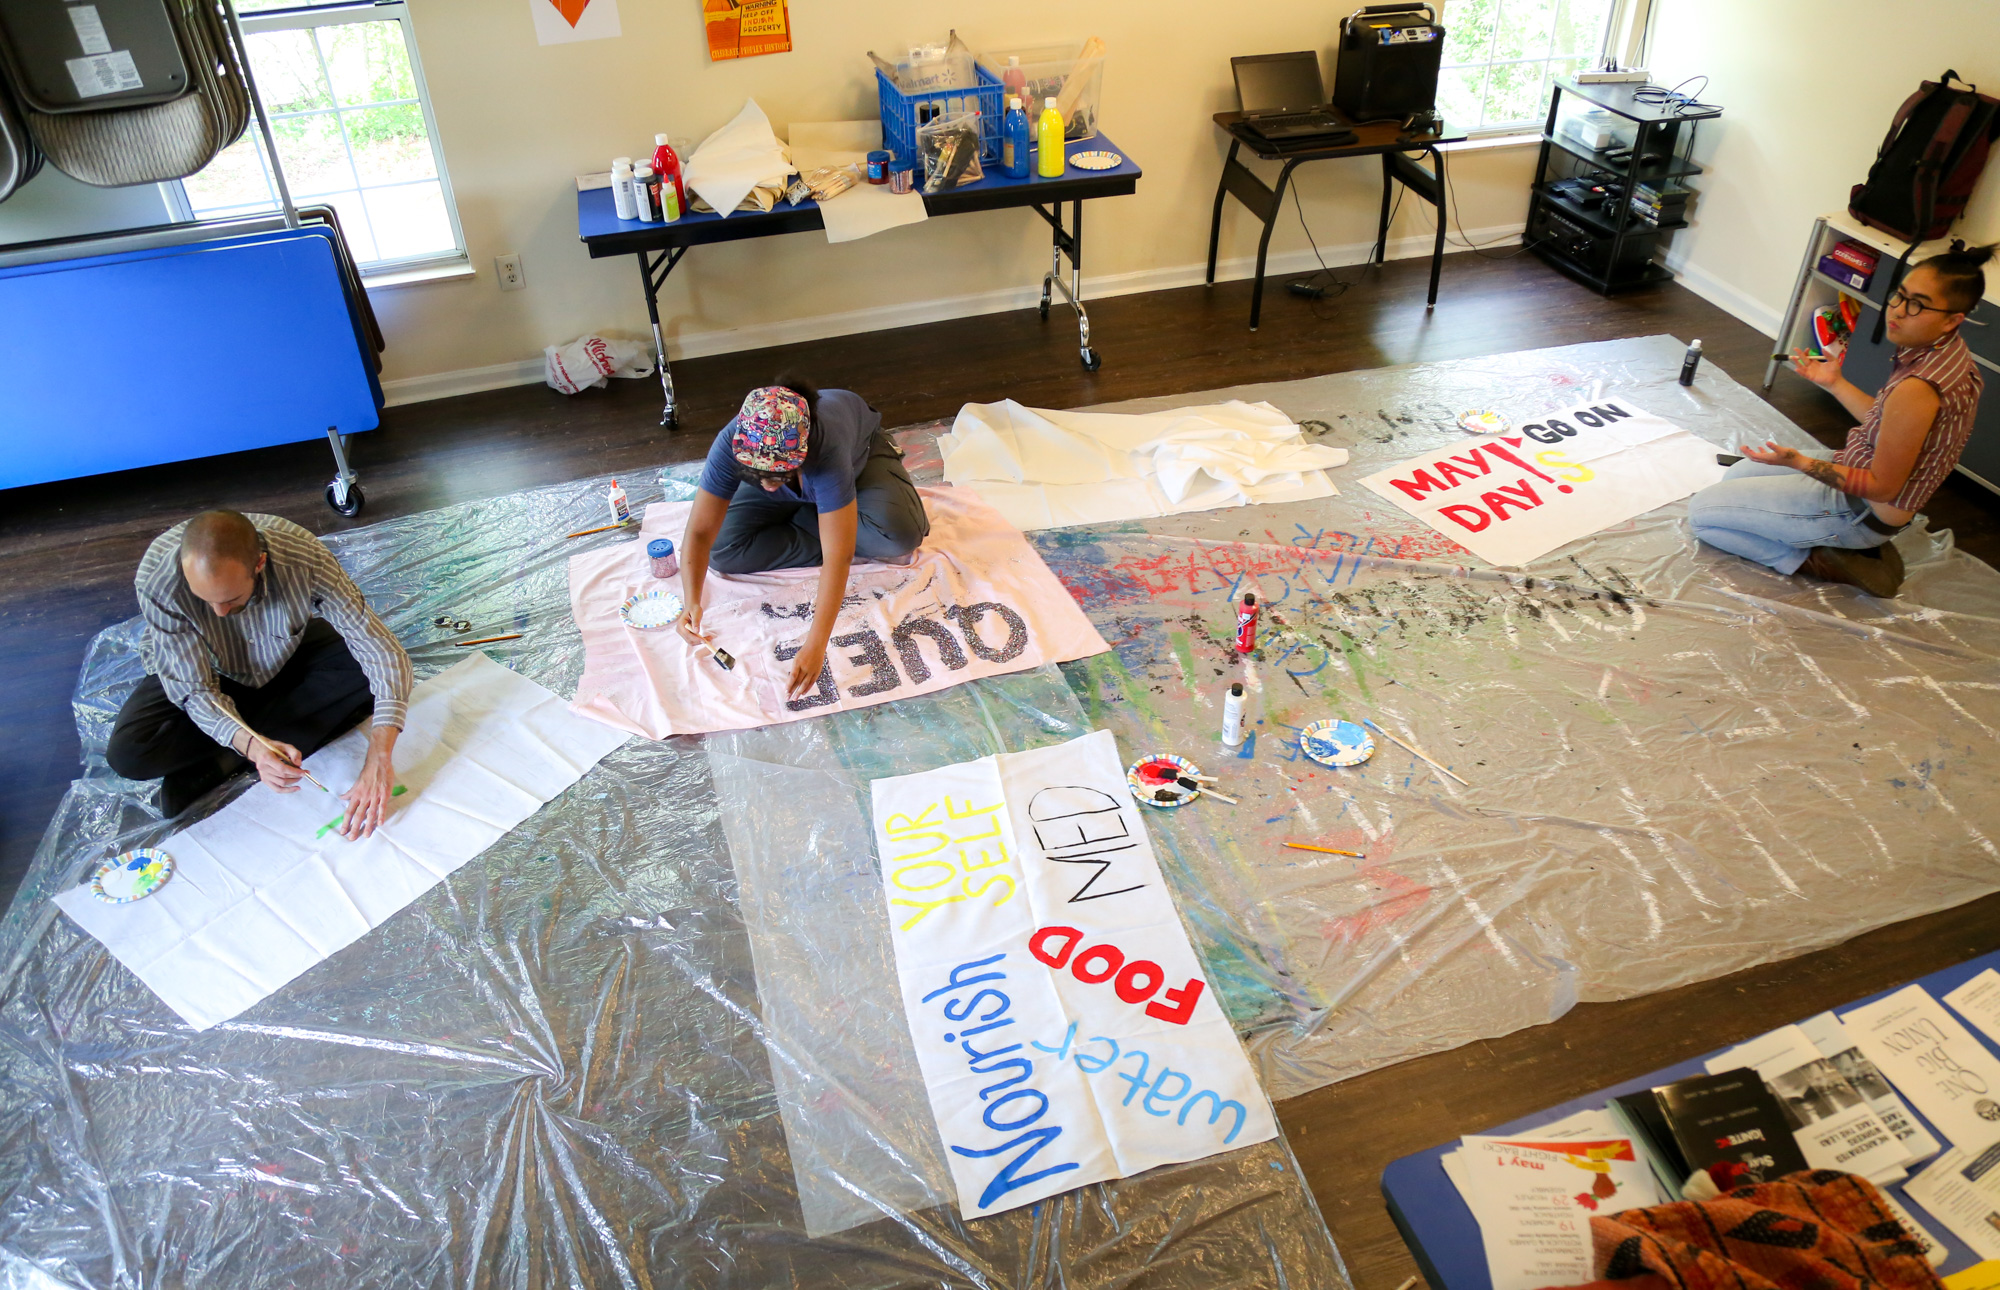 A couple of people show up painting the banners on the floor  for May Day protest at the Southern Vision Alliance office in Durham on April. 22.